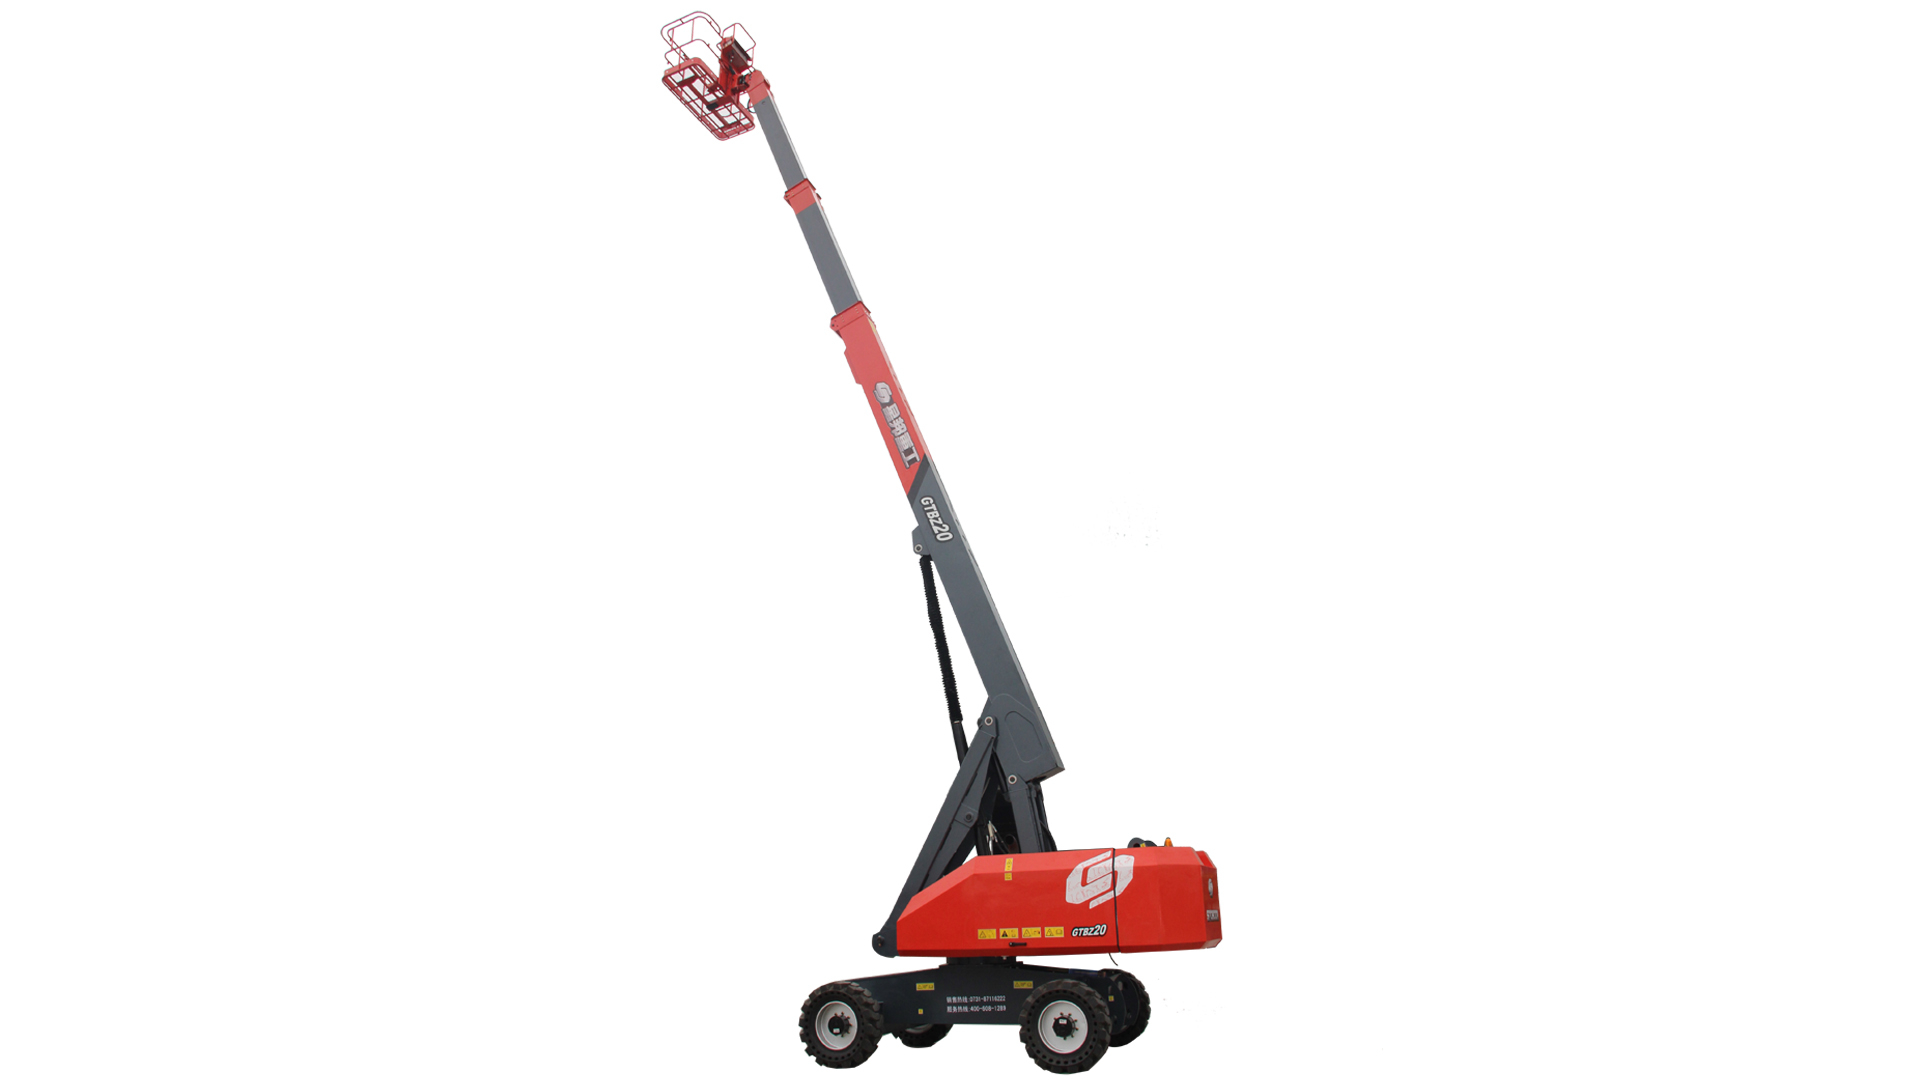 SINOBOOM GTBZ20 Telescopic Boom Lift